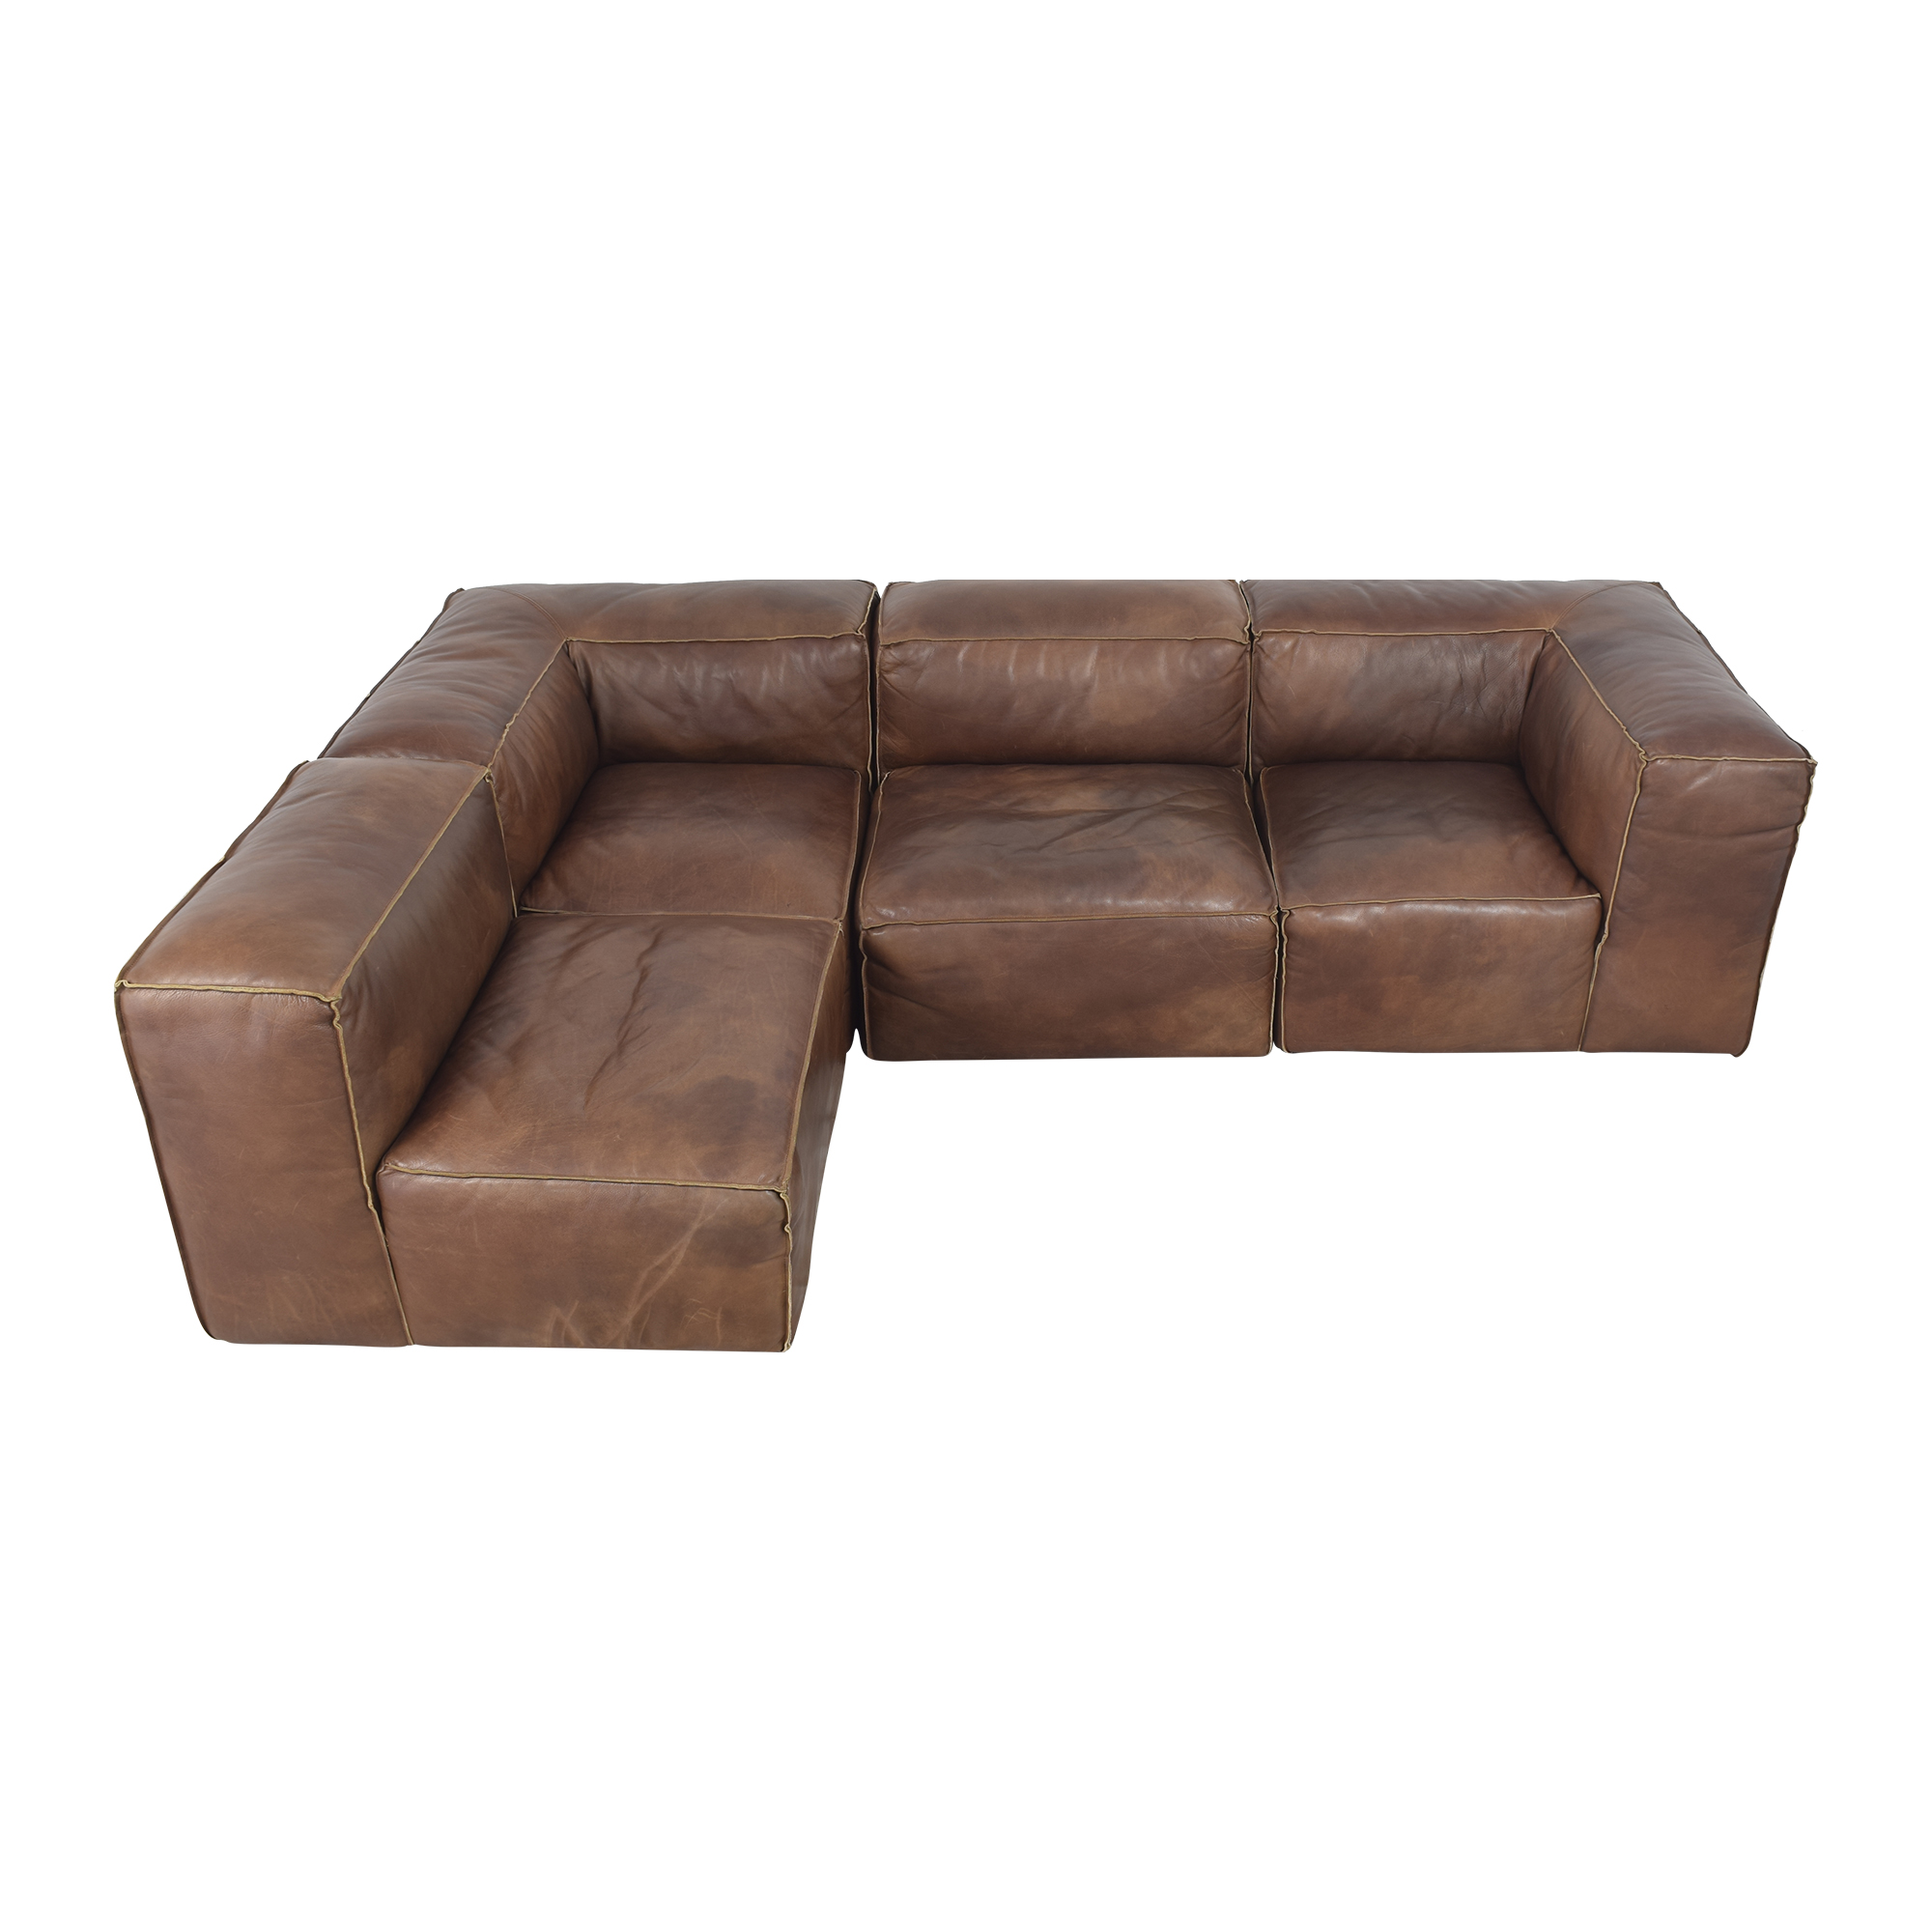 Restoration Hardware Restoration Hardware Fulham Sectional dimensions